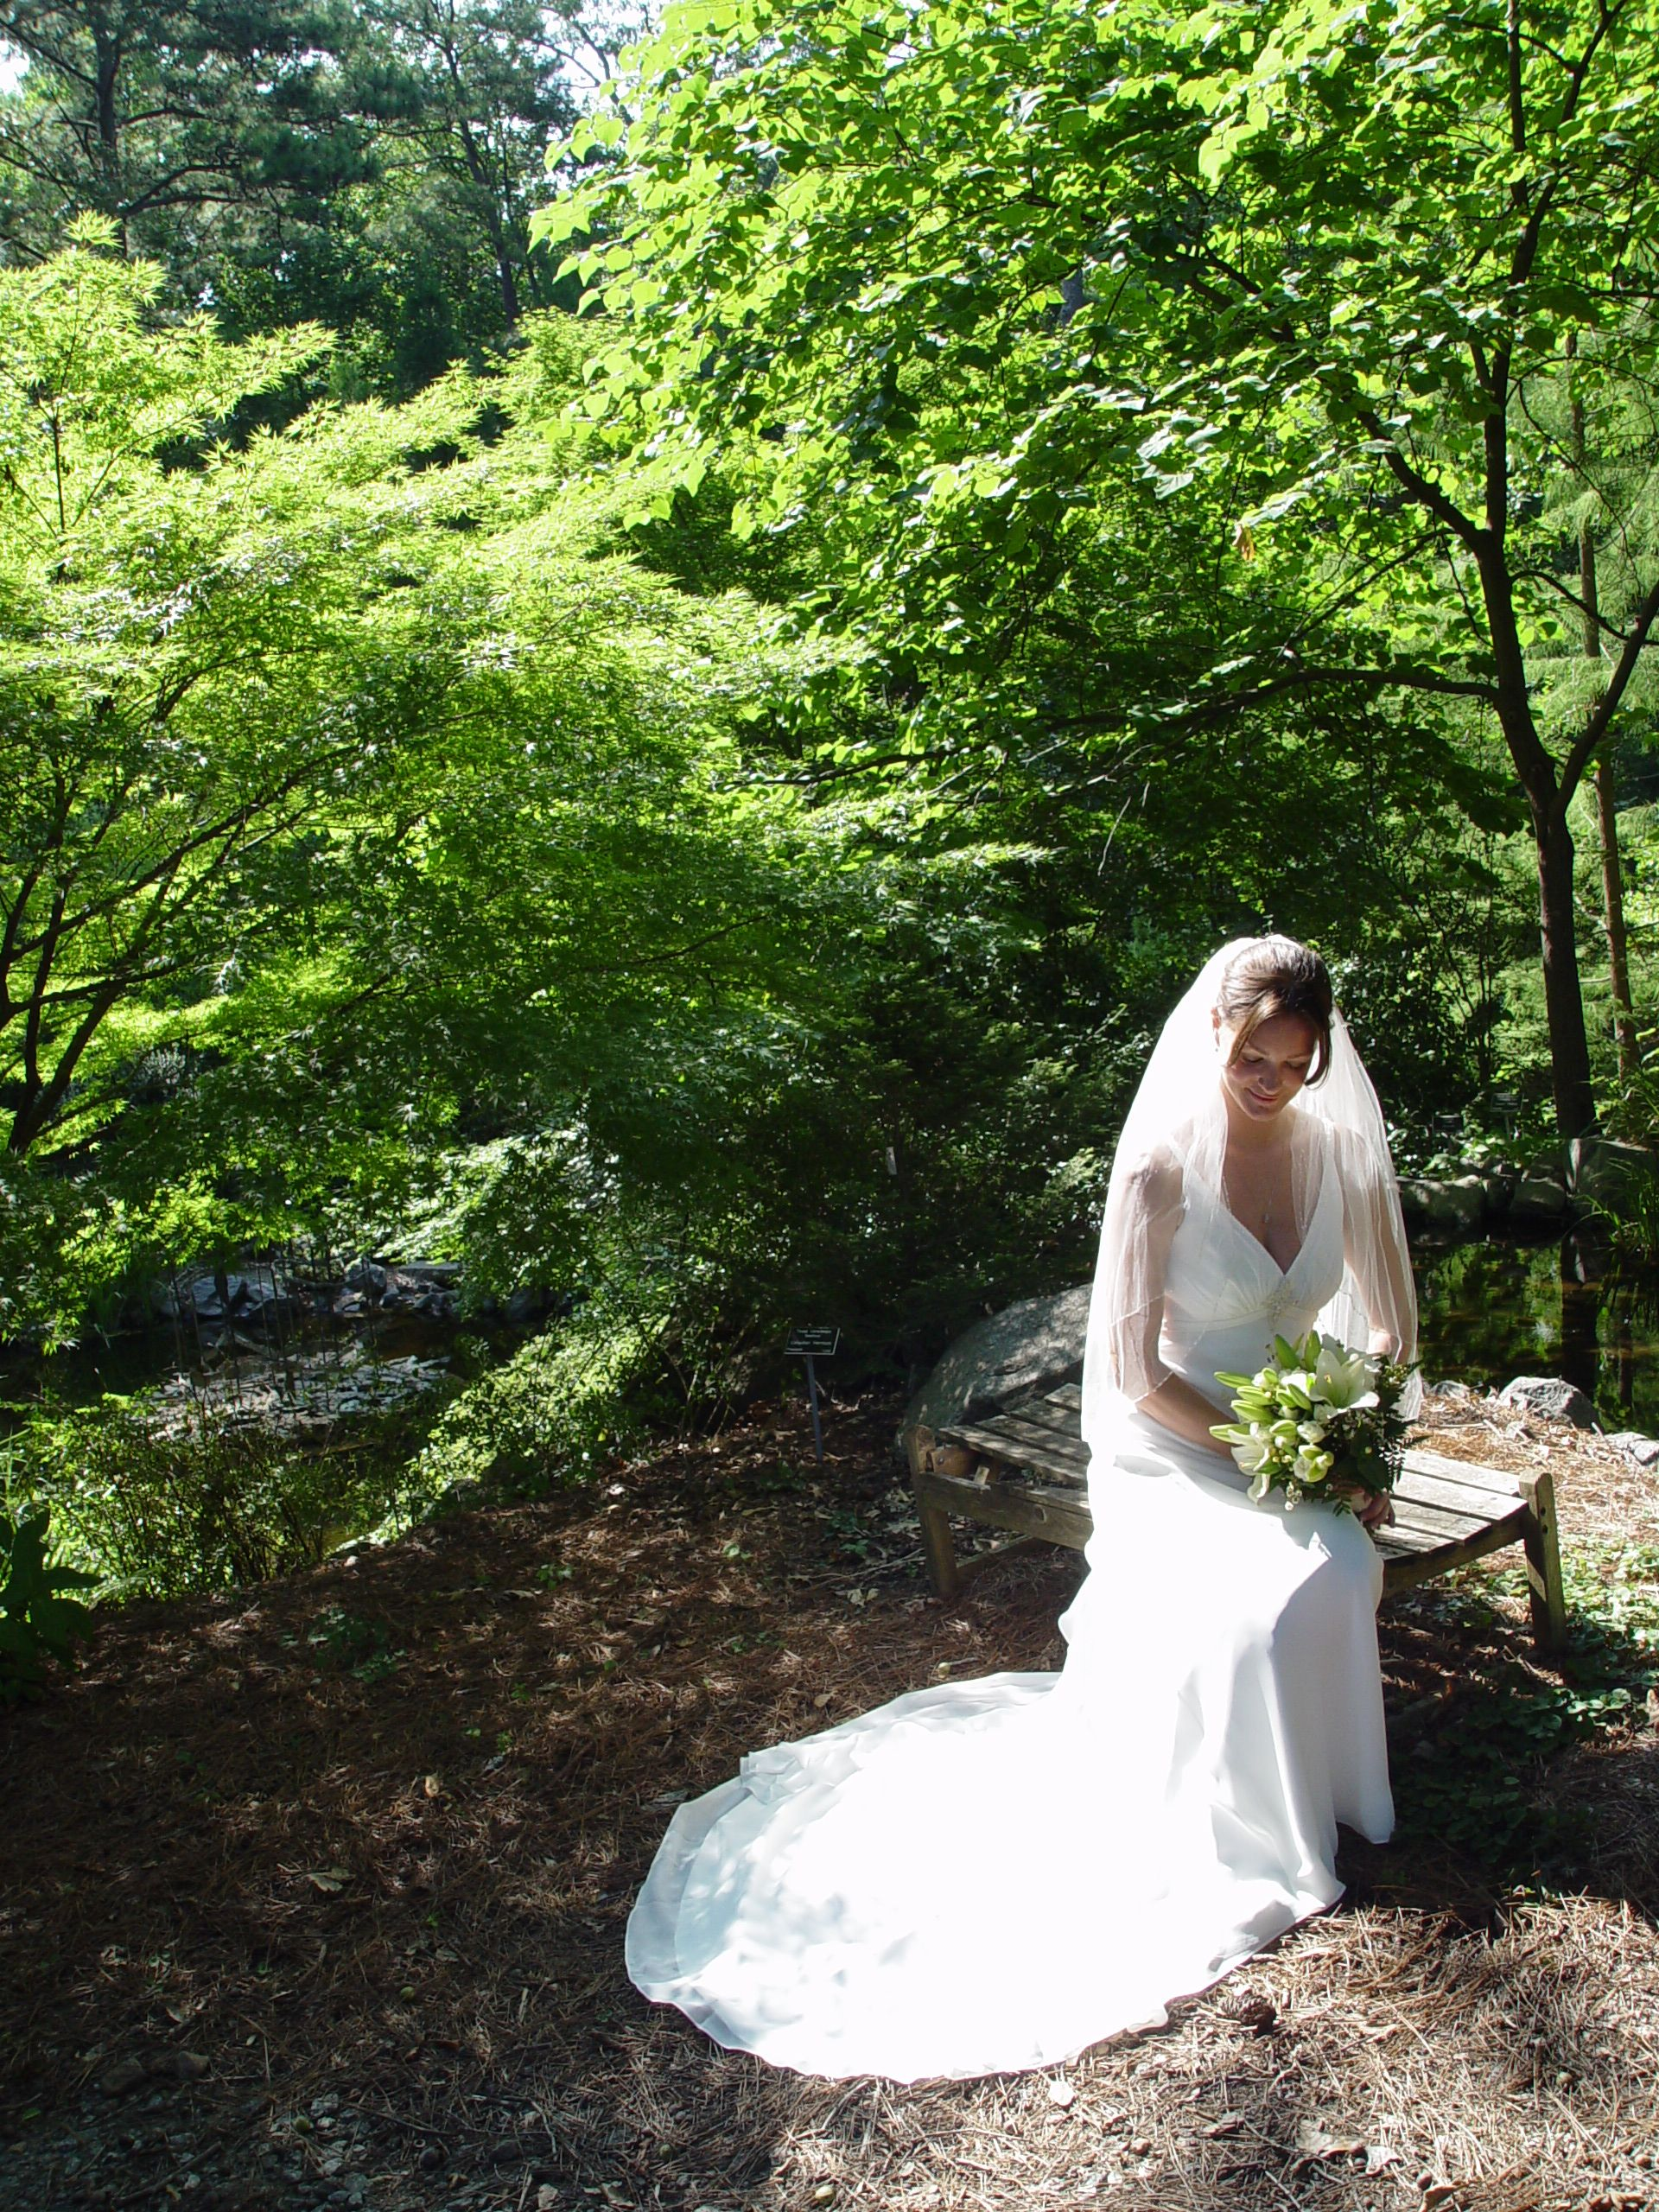 Romance and beauty at SmithGilbert Gardens in Kennesaw